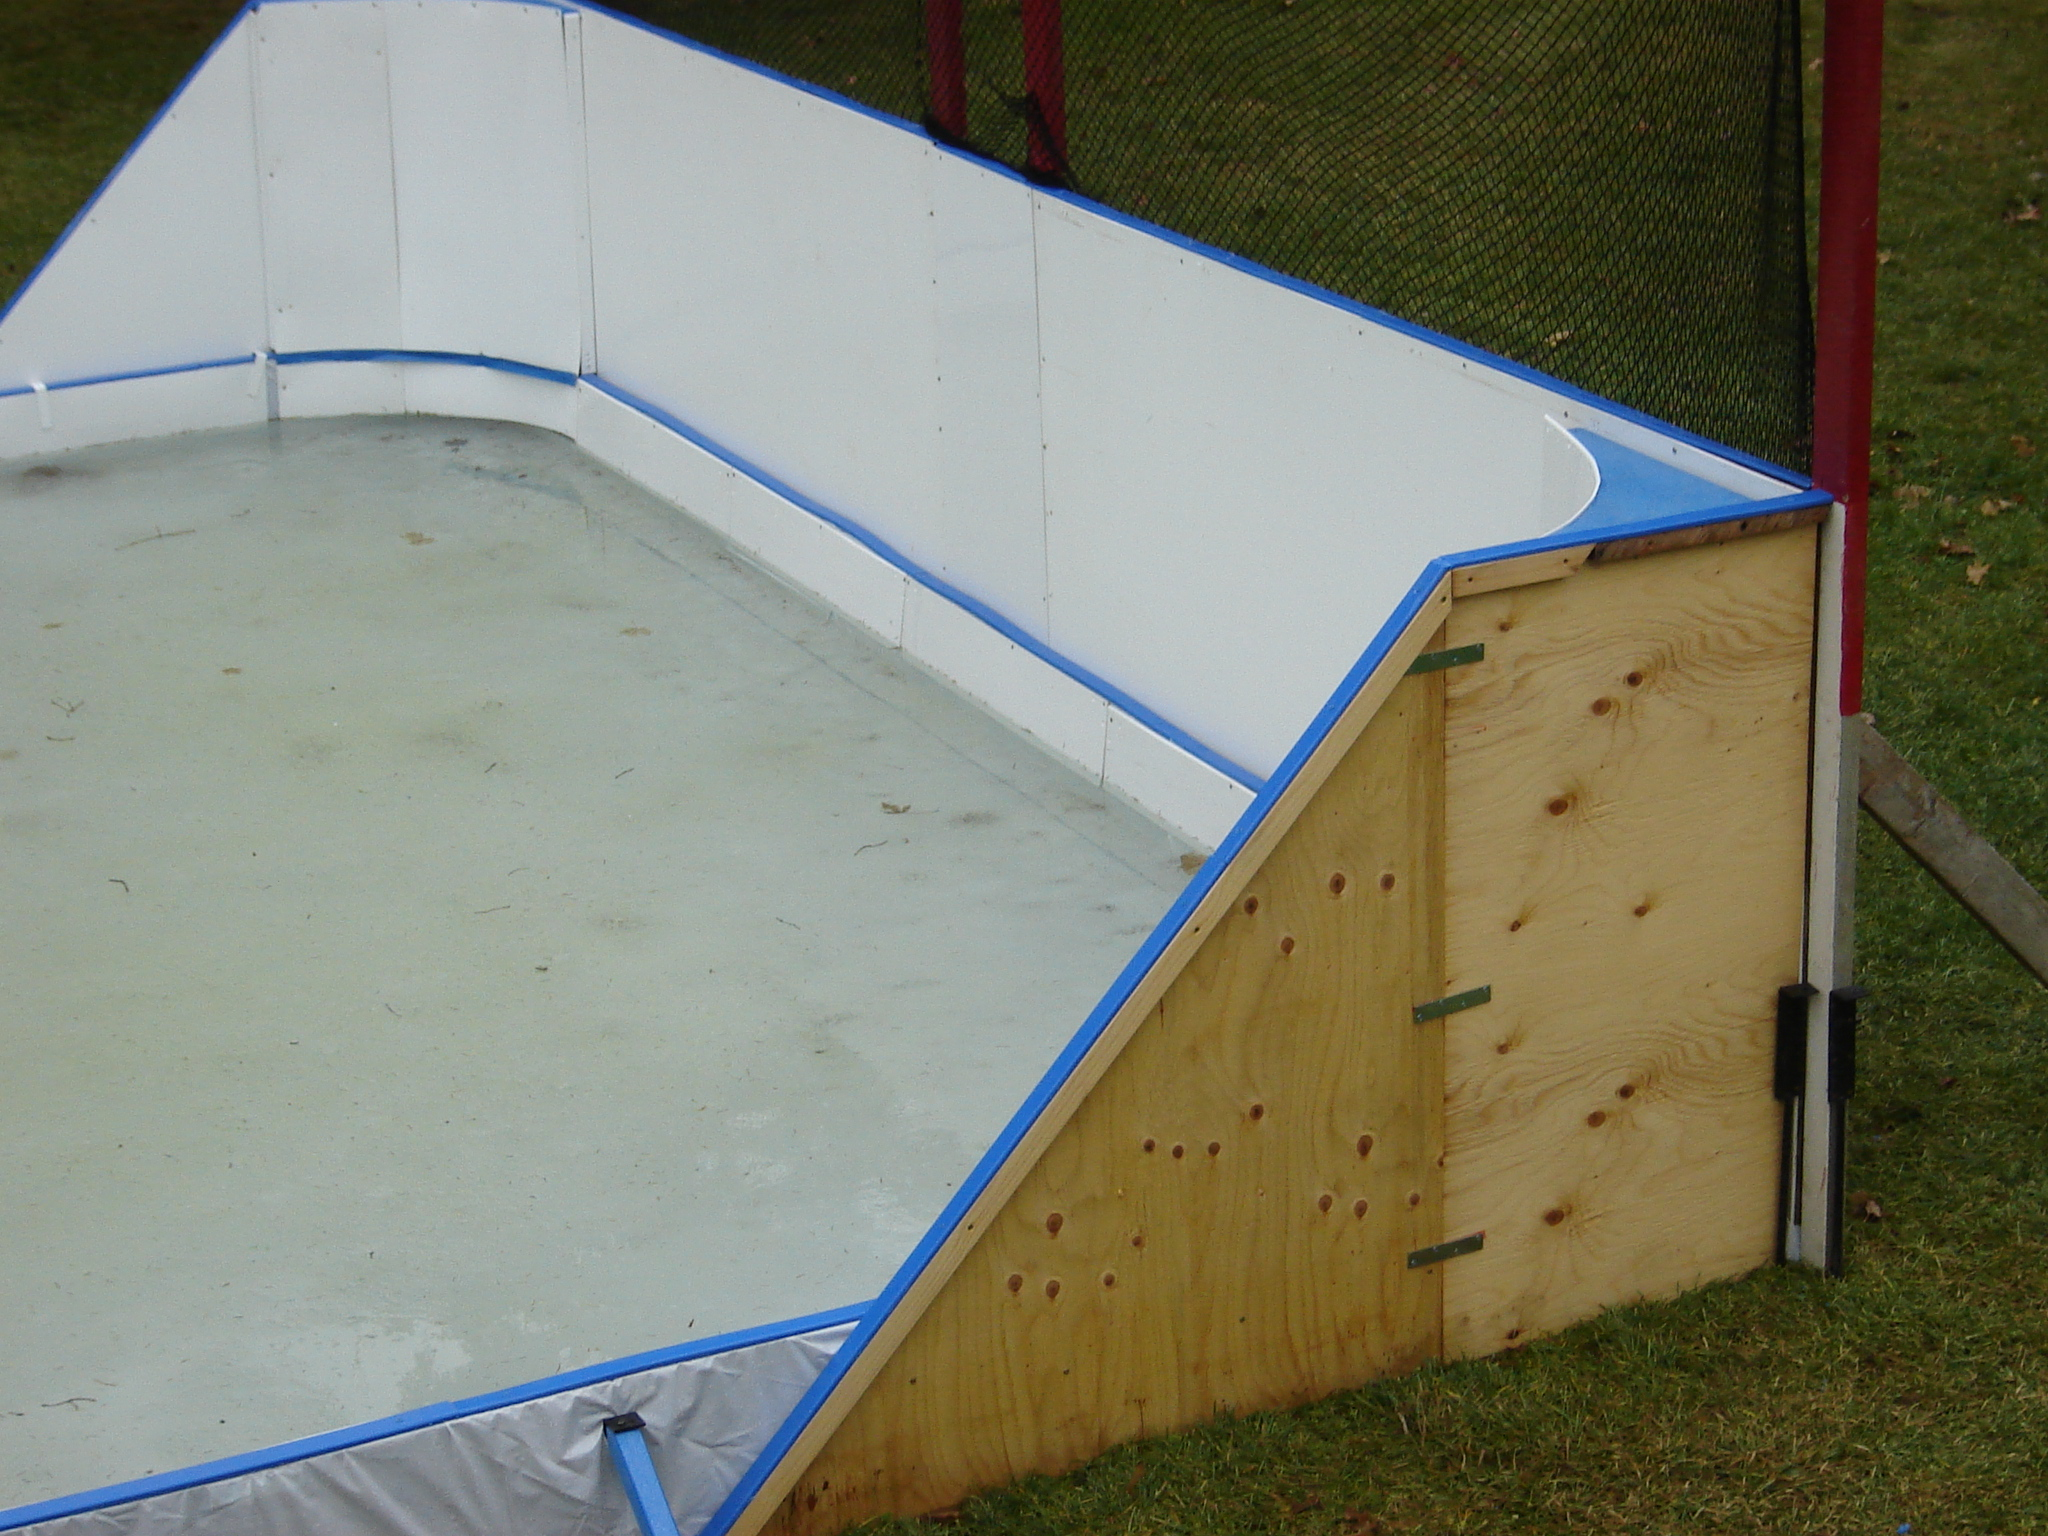 Backyard Rink Boards : Backyard Ice Rink Boards Puckboard arena board for rinks and ramps